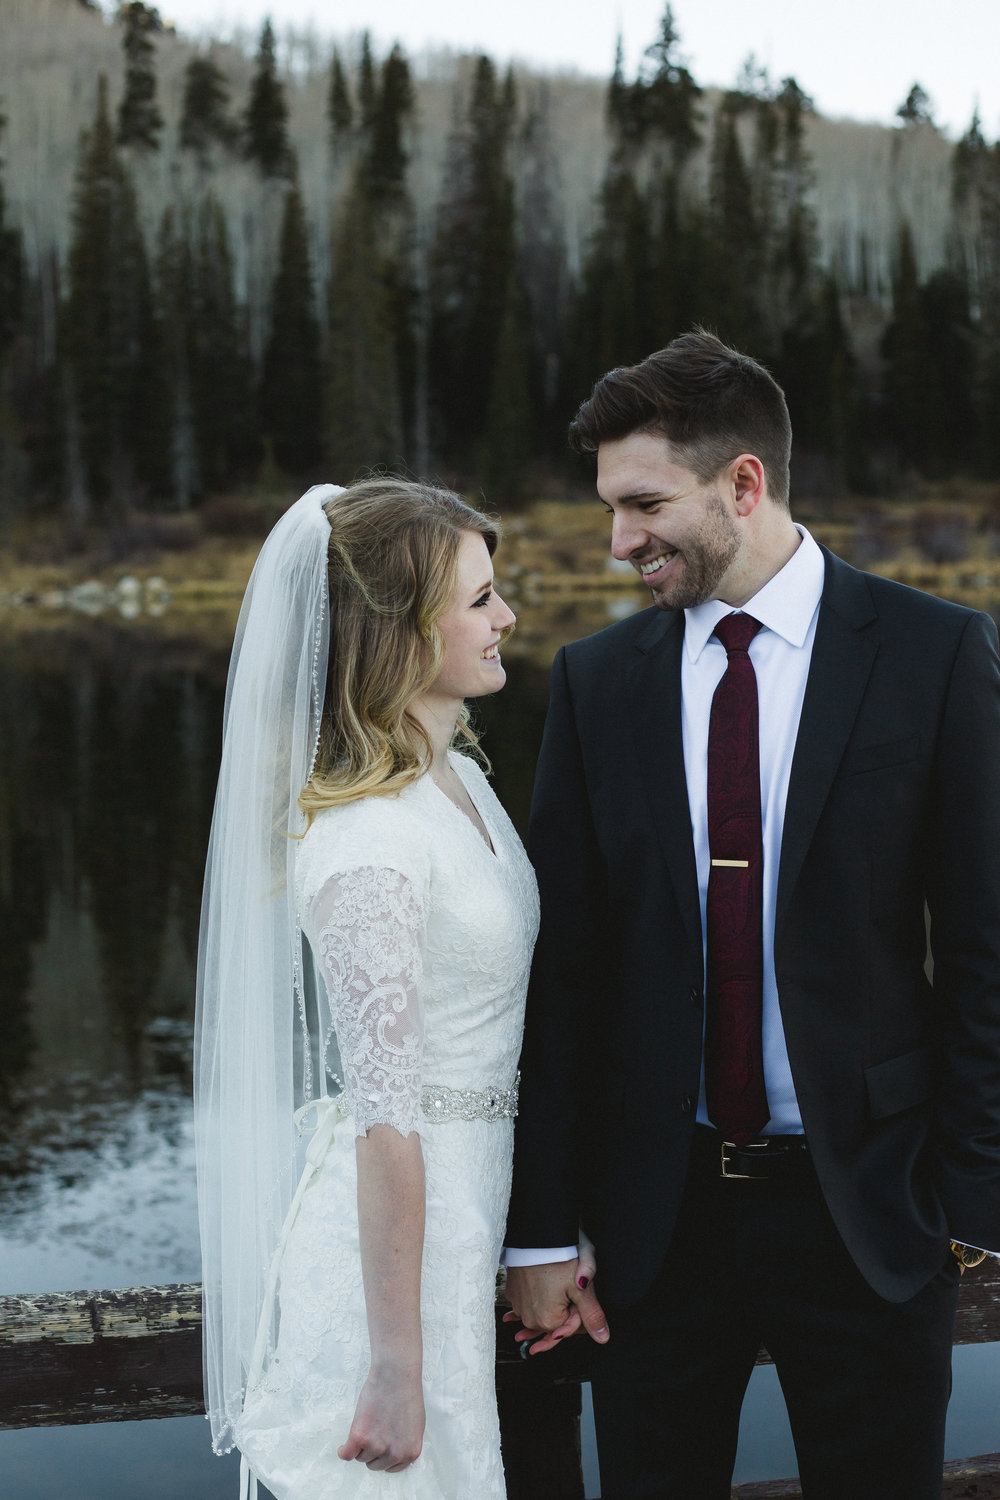 Courtney Volksen Photography | Winter Mountain Bridals & first look at Silver Lake in Utah